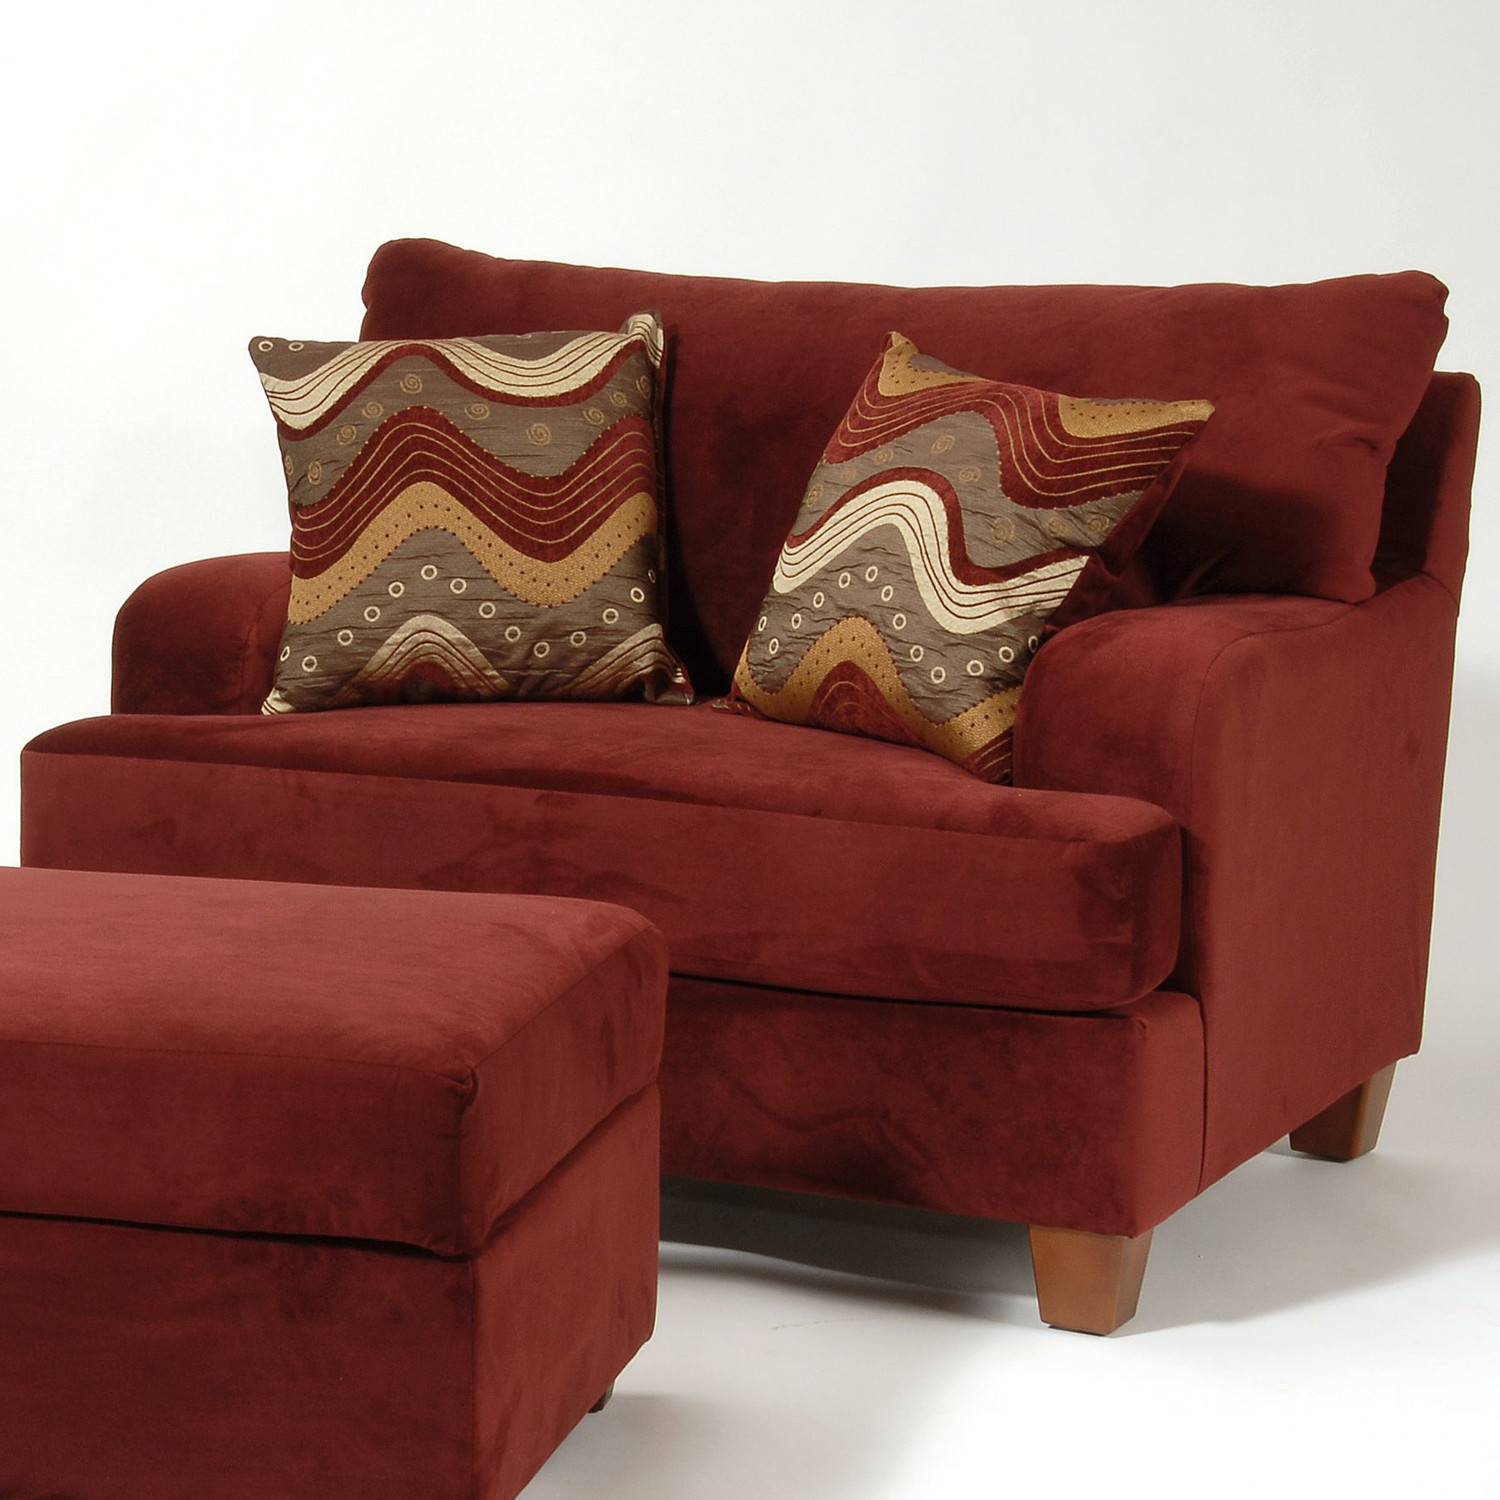 red chairs with ottomans for living room and double stylish pillows